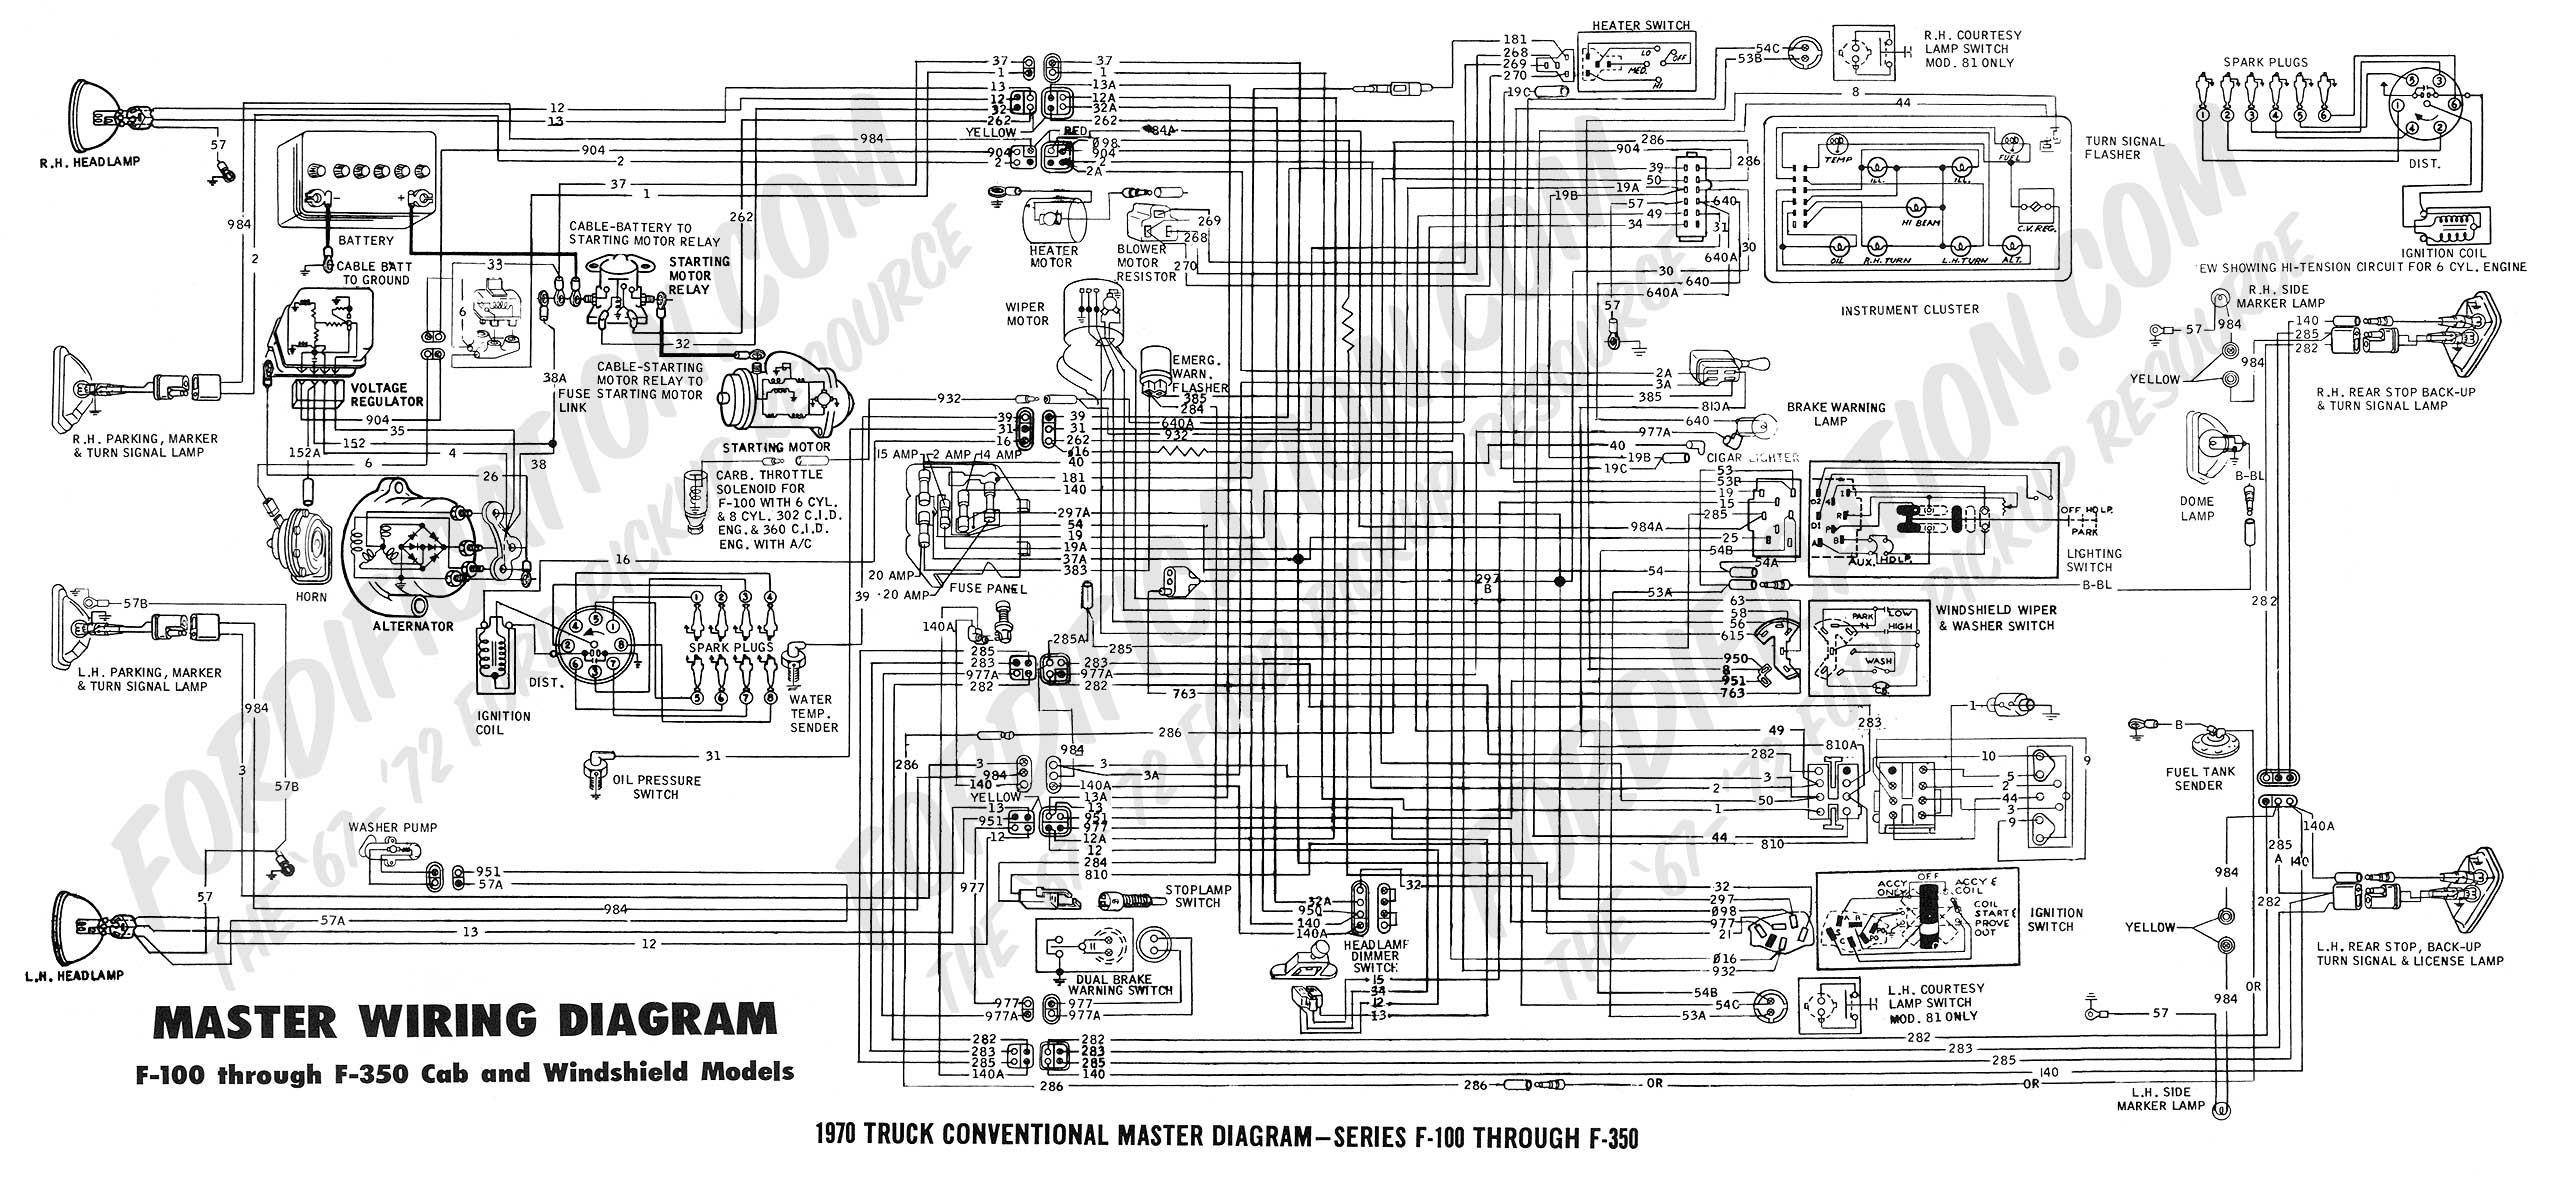 wiring diagram 70_master f450 wiring diagram pto wiring diagram f450 \u2022 wiring diagrams j  at bayanpartner.co